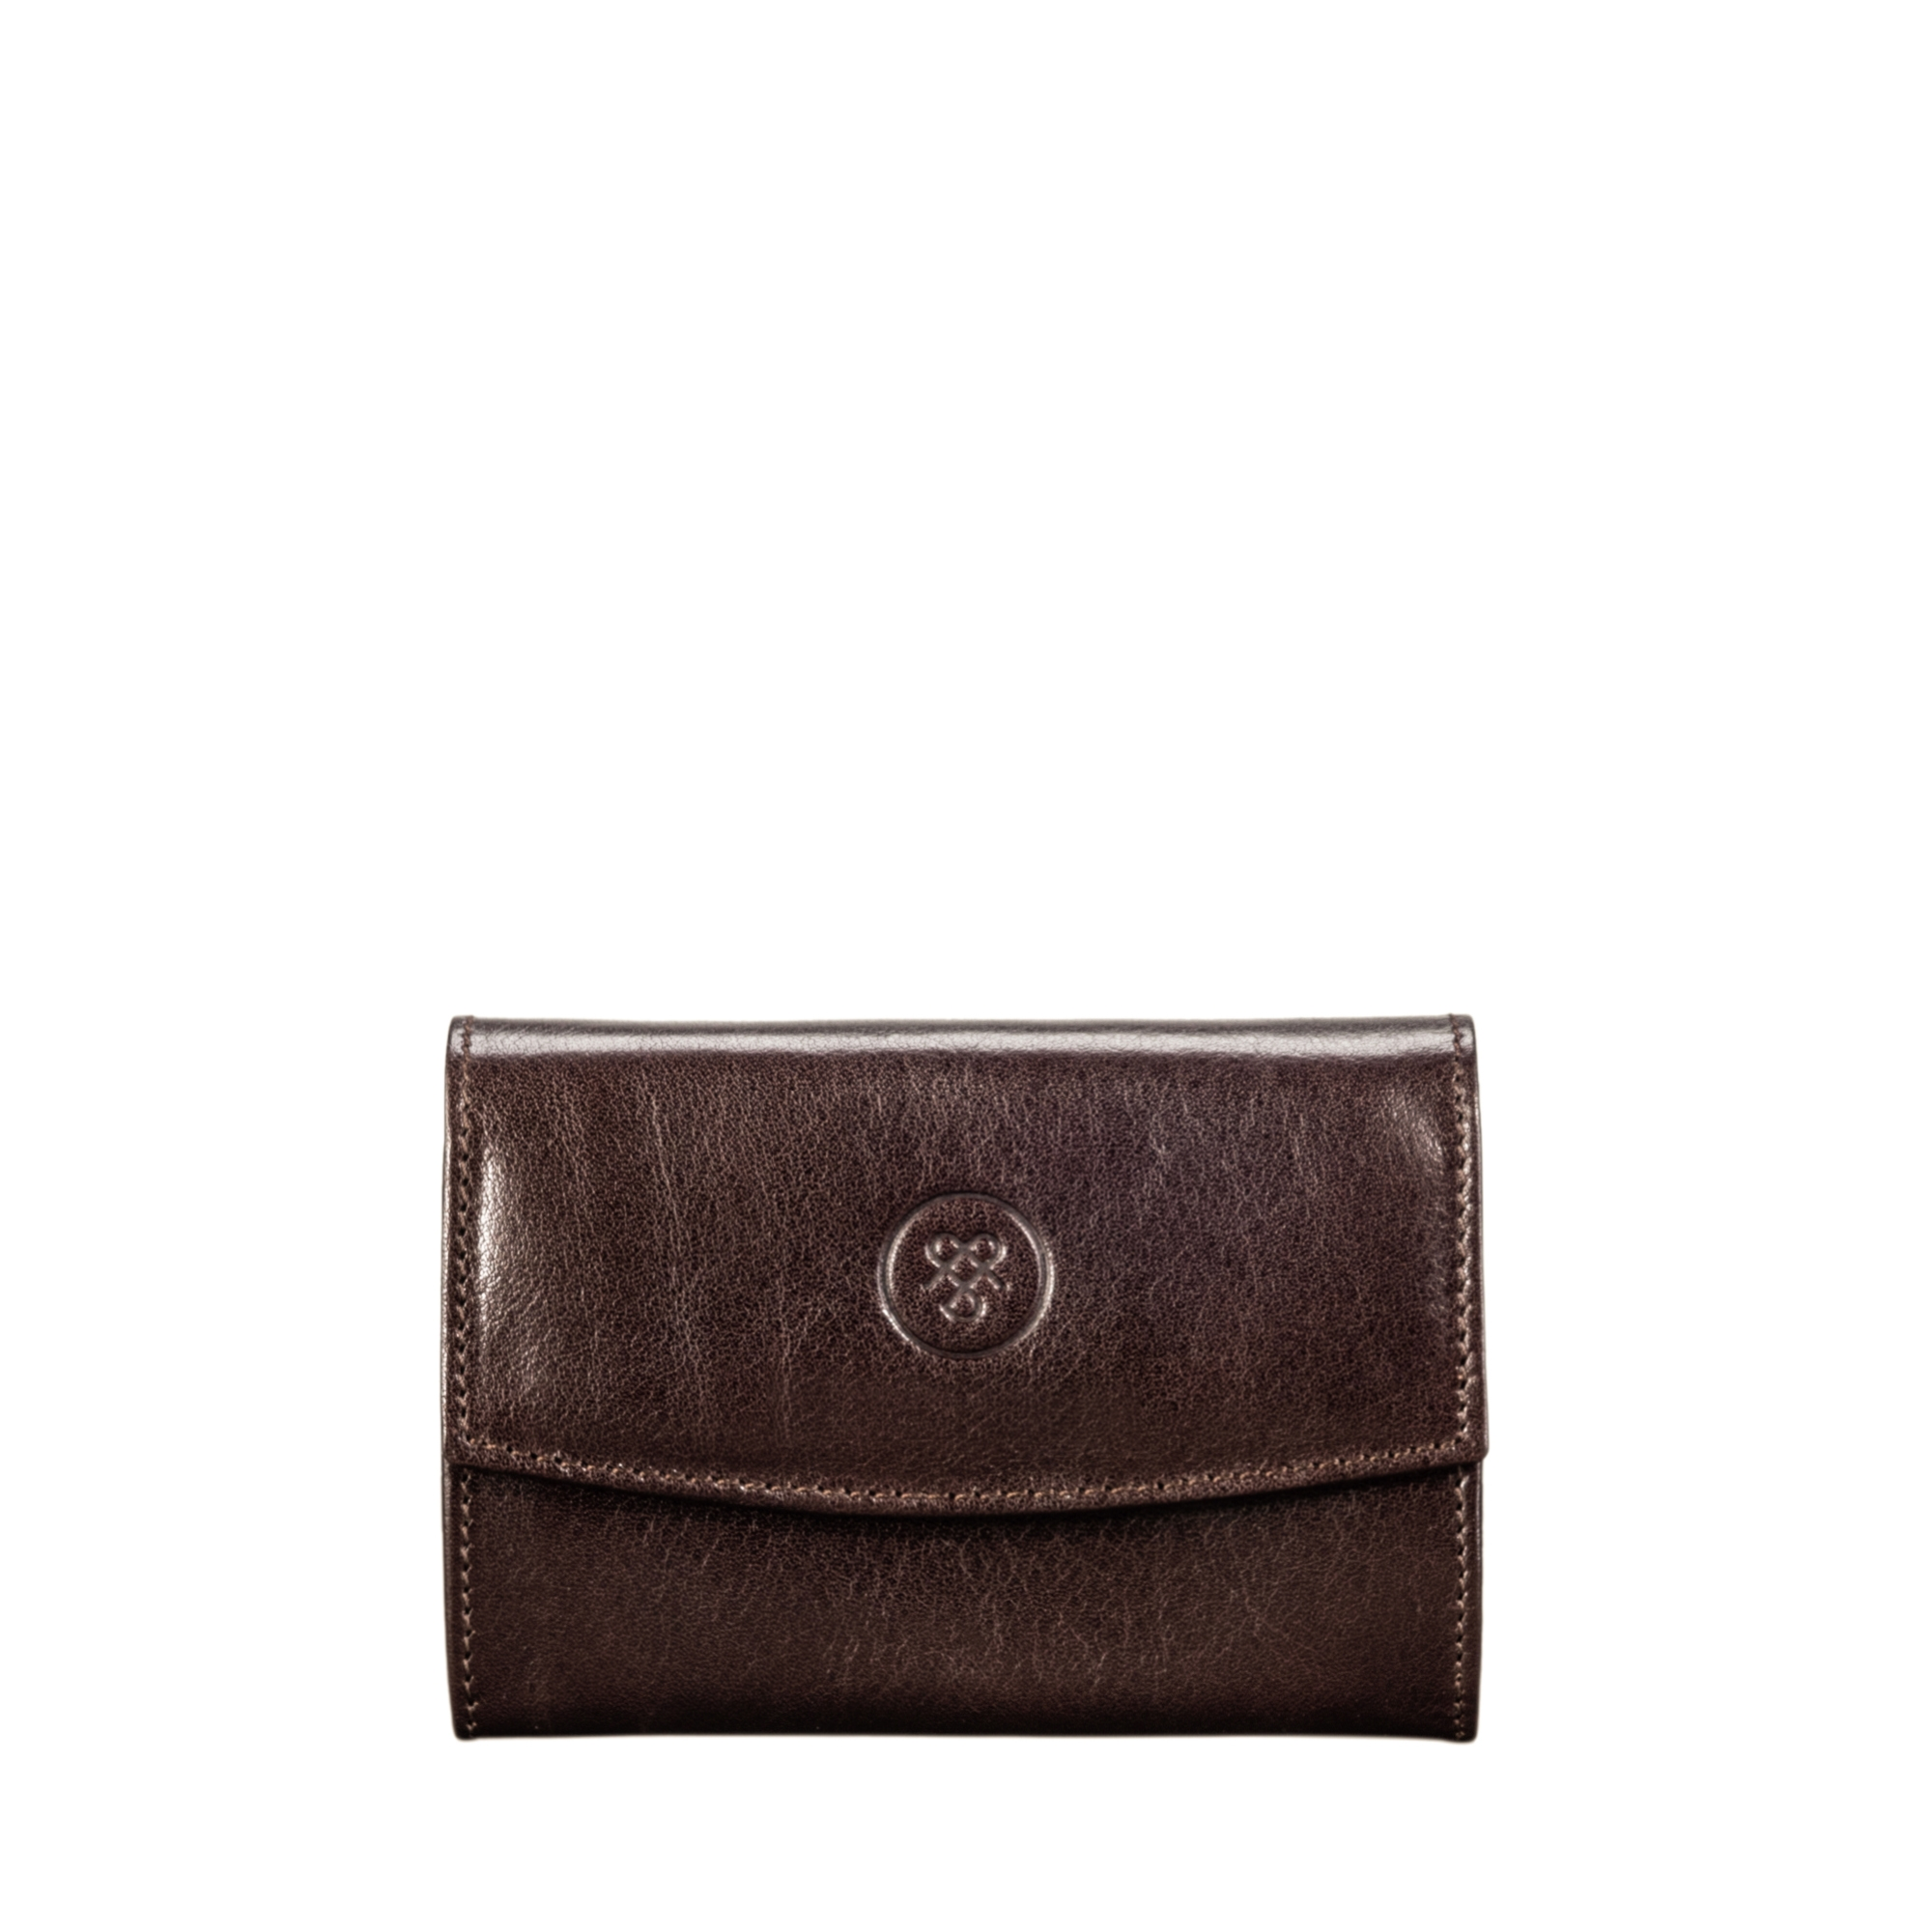 BROWN FULL GRAIN SMALL LEATHER PURSE FOR WOMEN